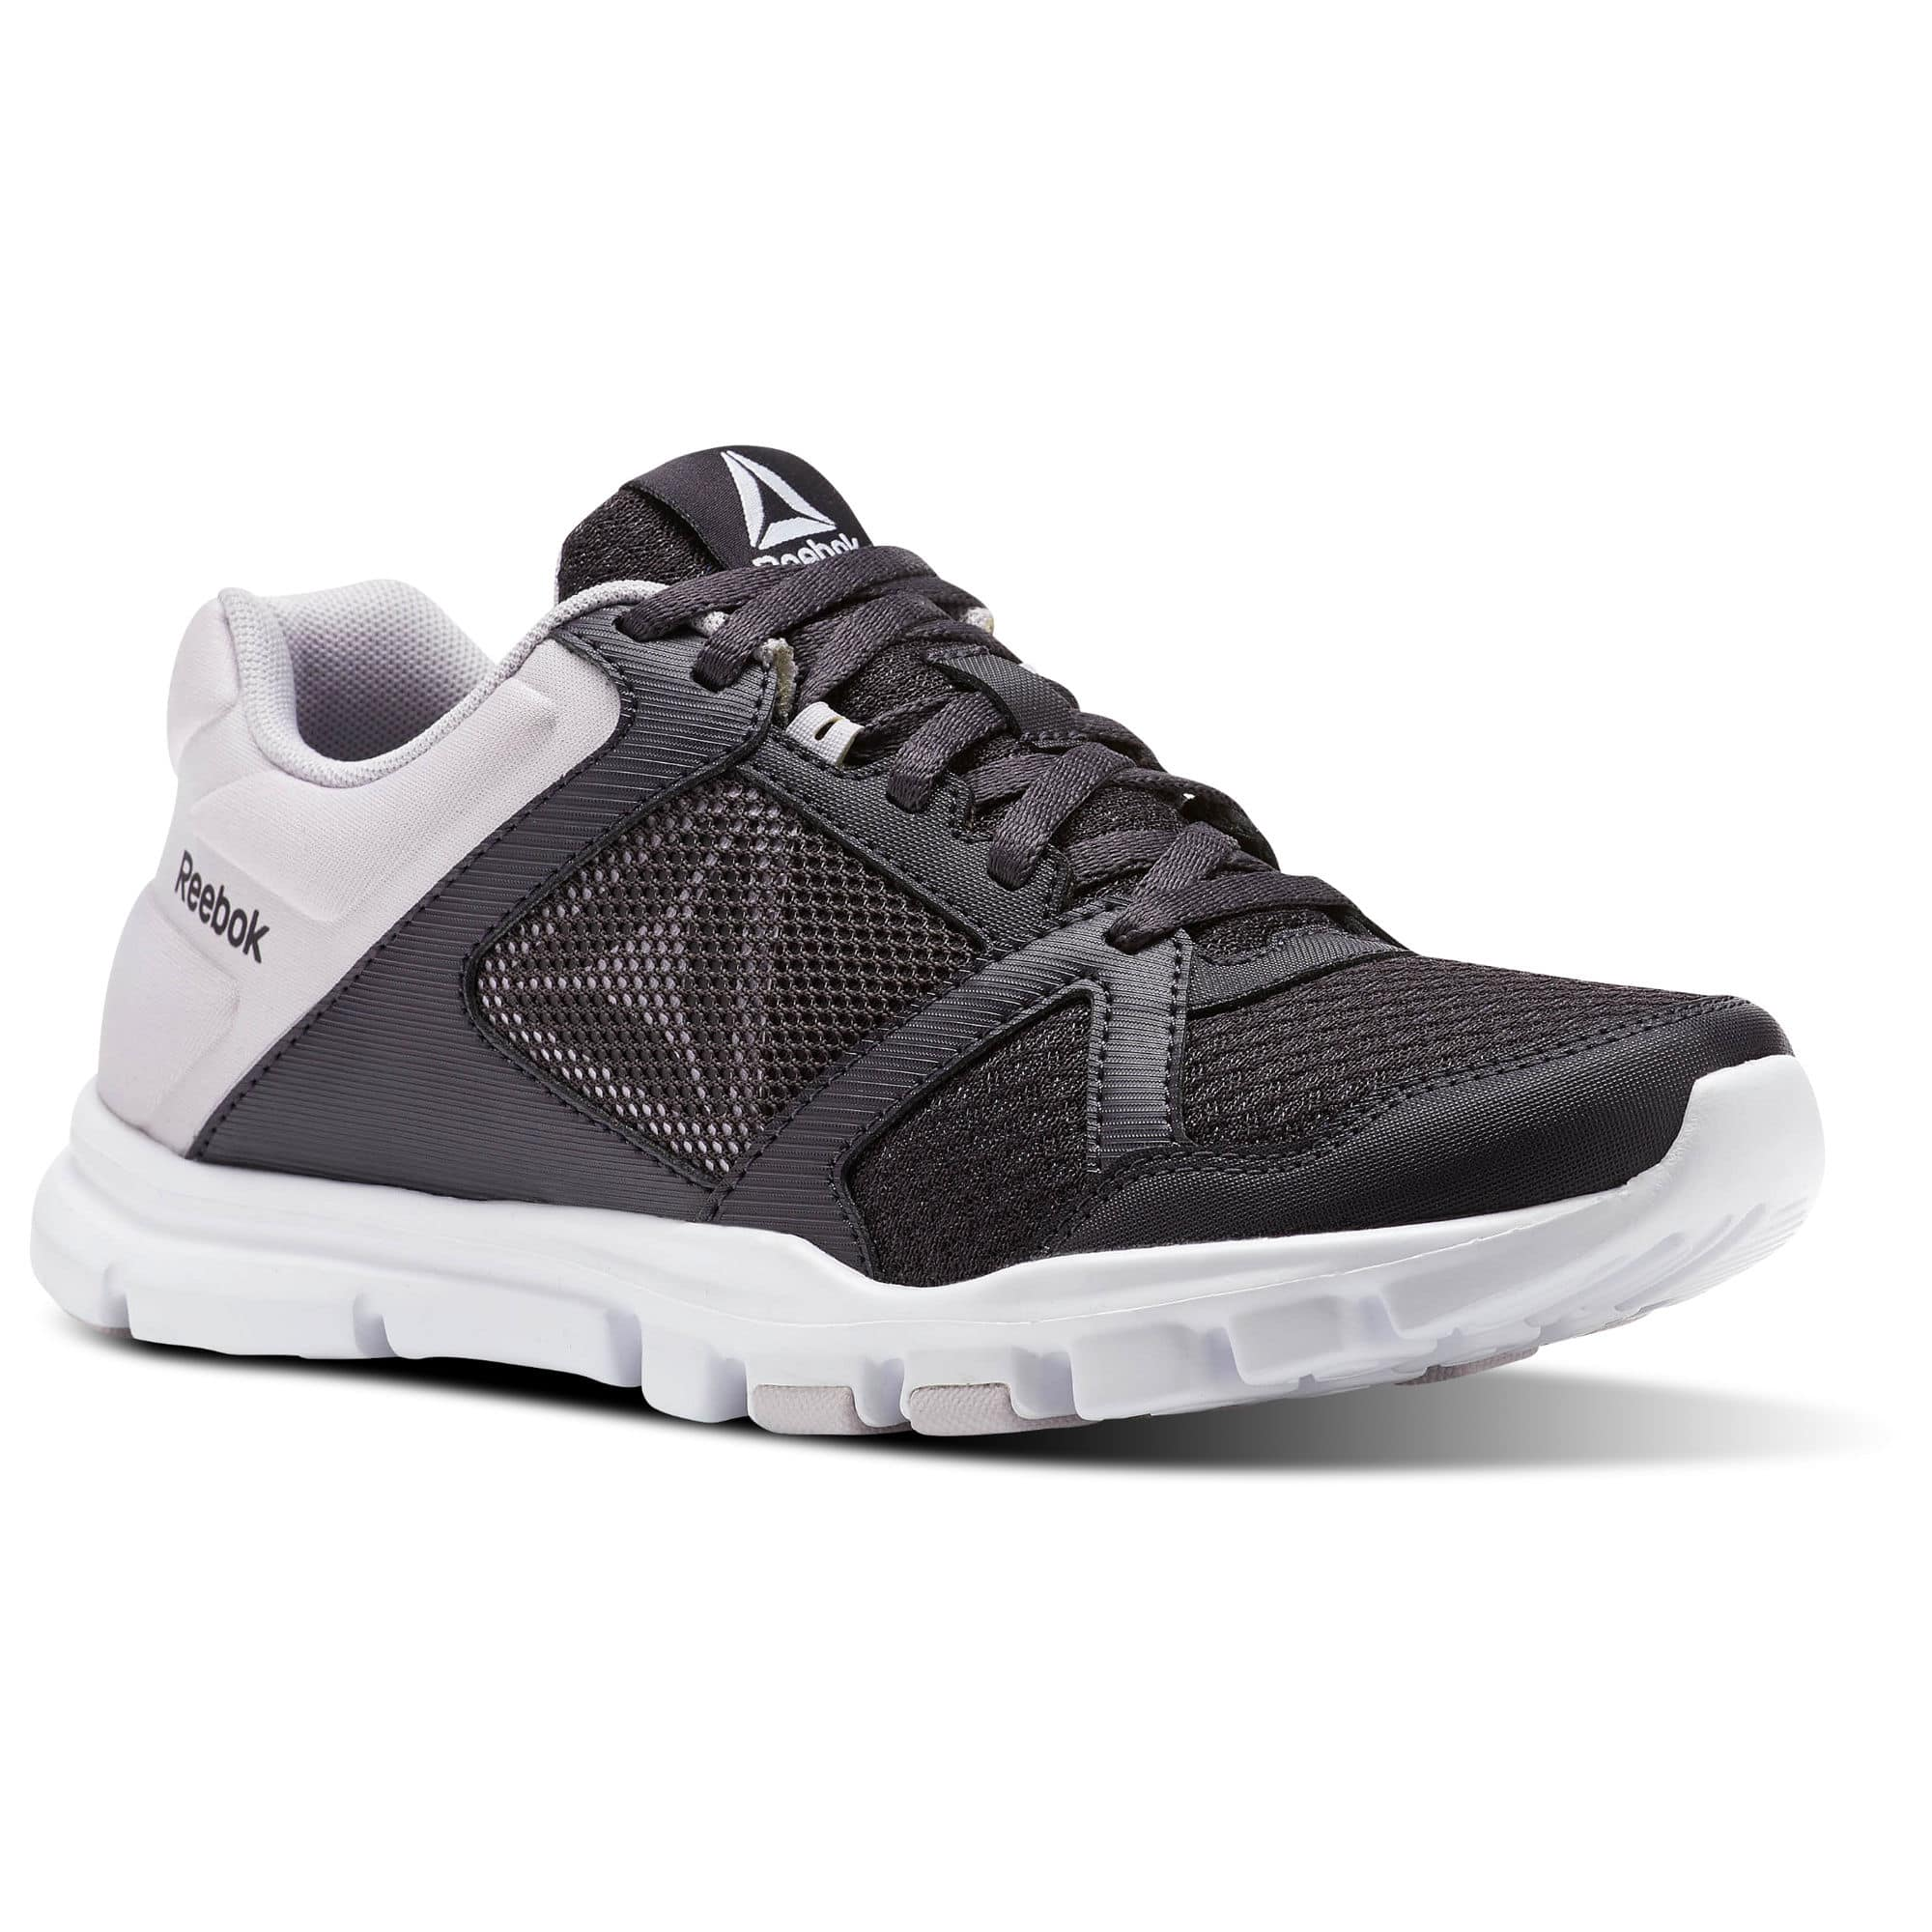 5fae59b7c6c Reebok Women s YourFlex Trainette 10 Shoes - Slickdeals.net